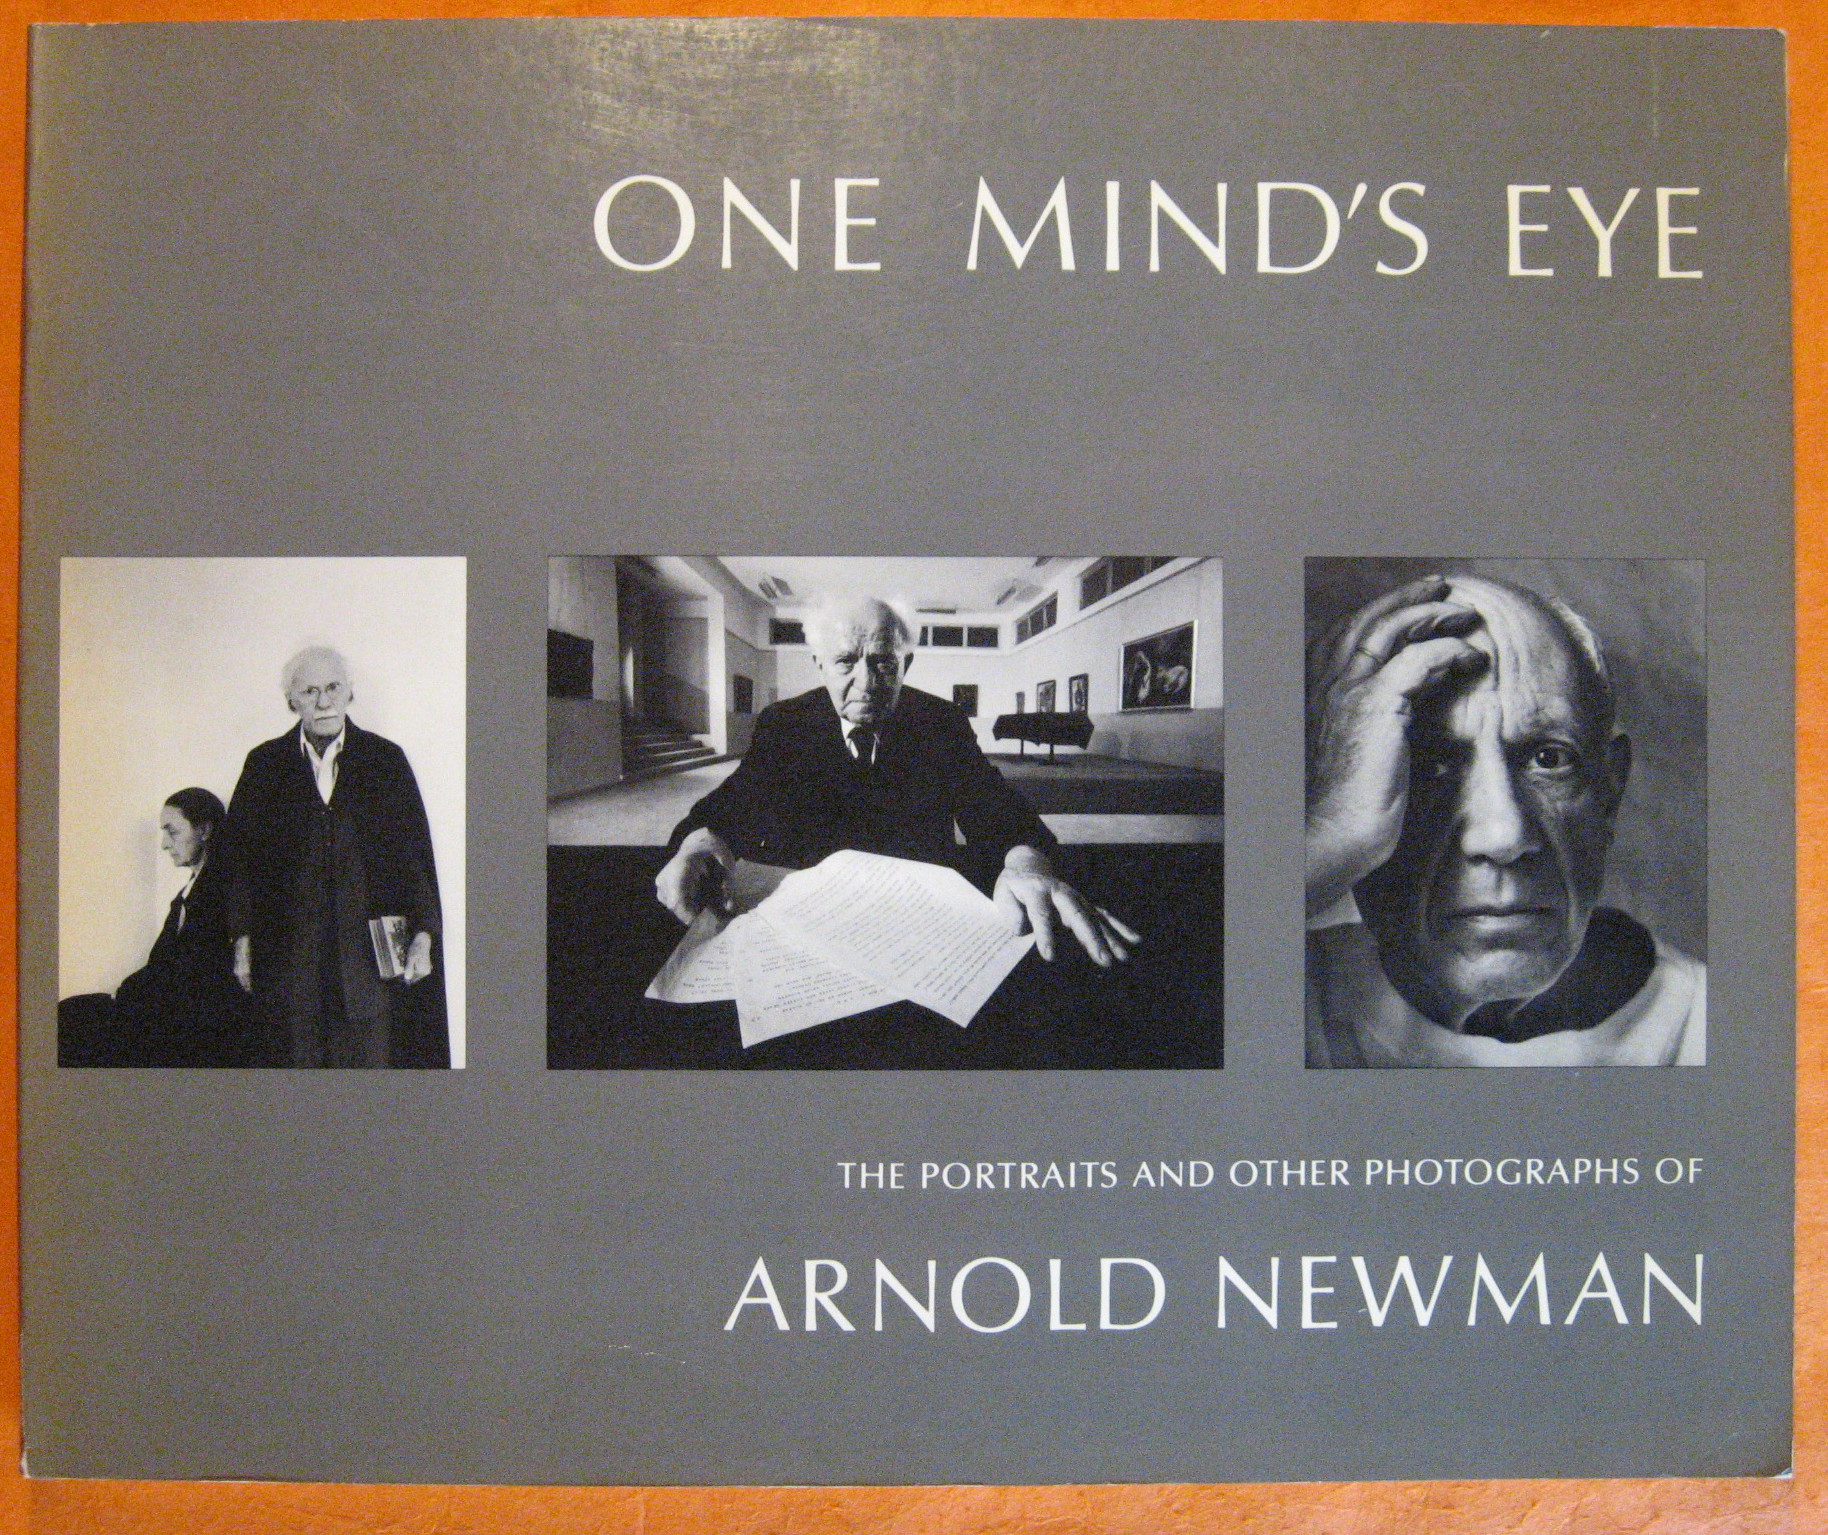 One Mind's Eye, Arnold Newman